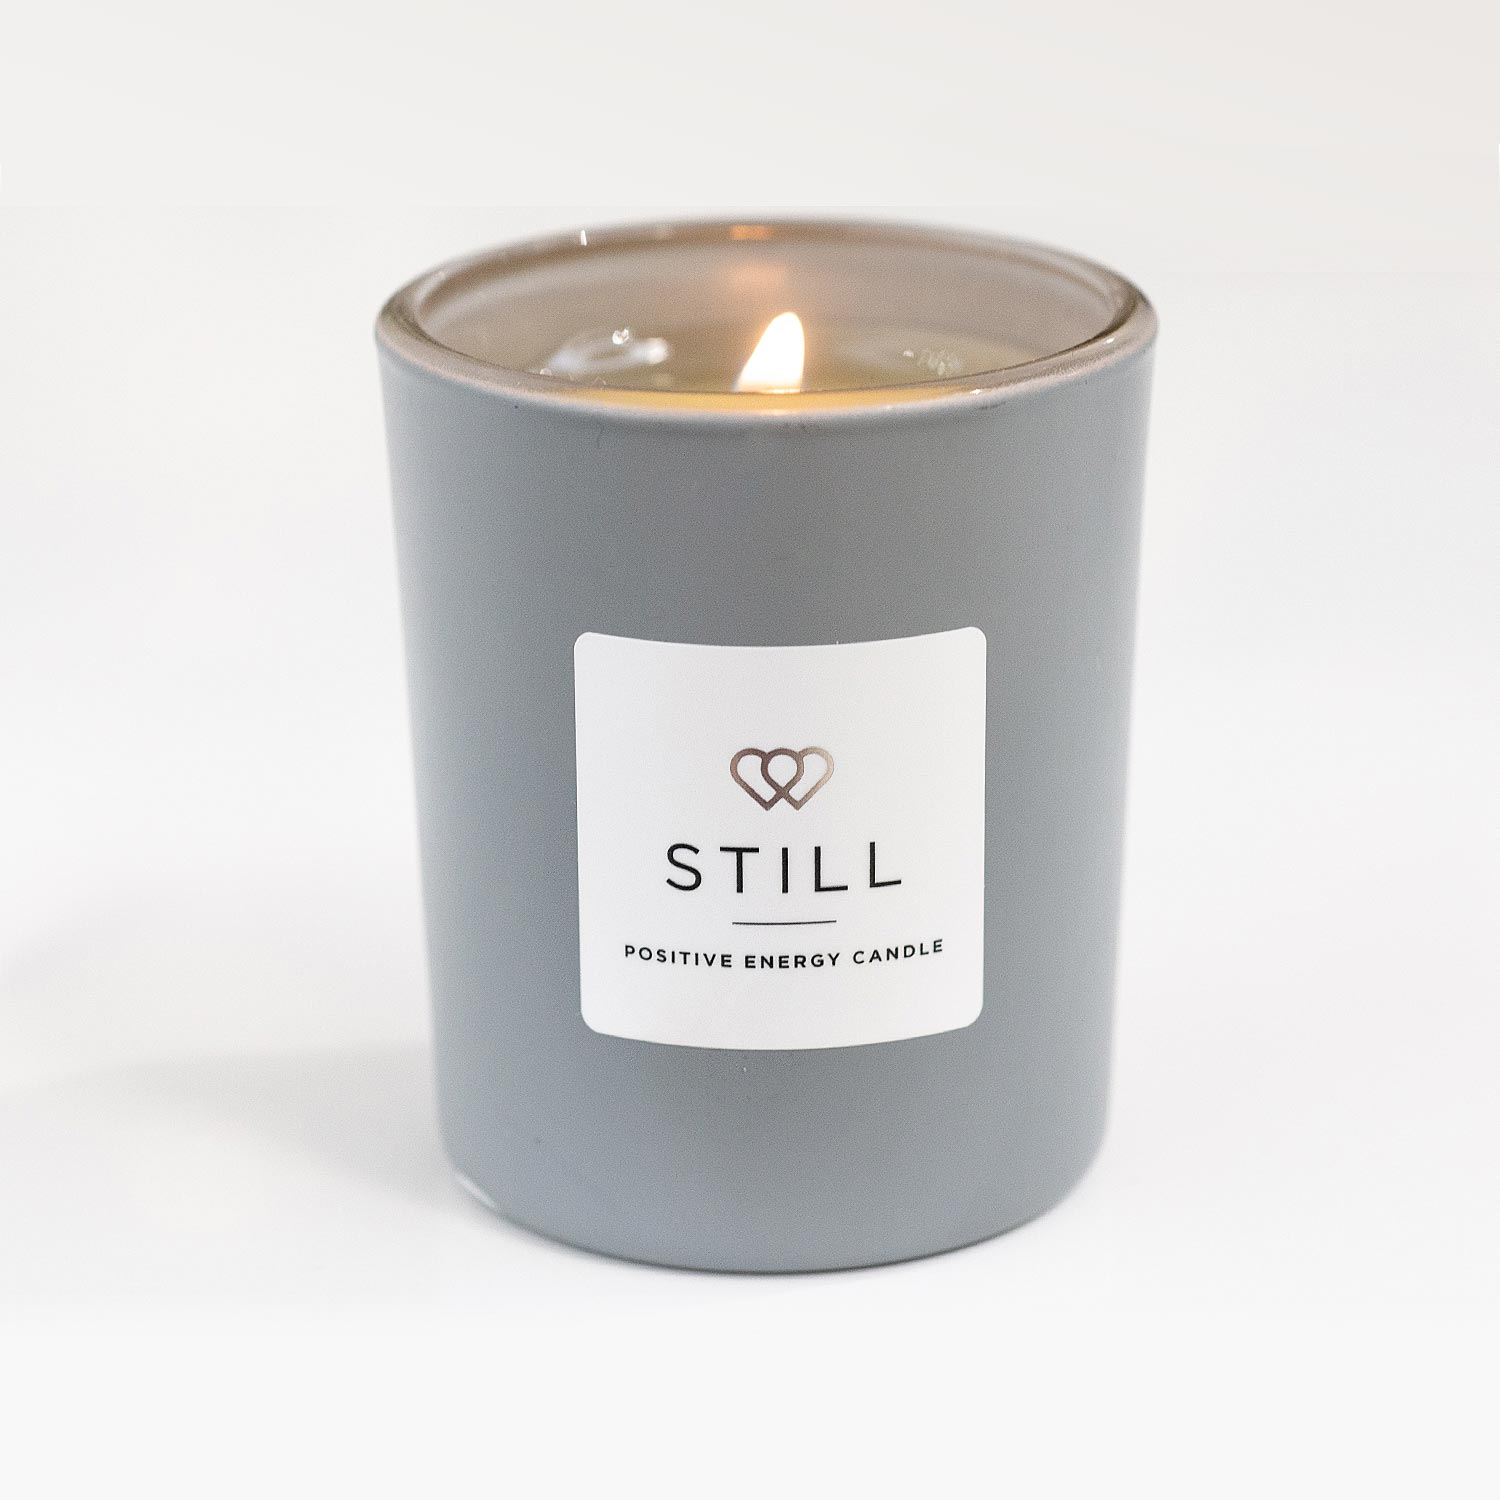 Beauty Shortlist Recommends  STILL Positive Energy Candle